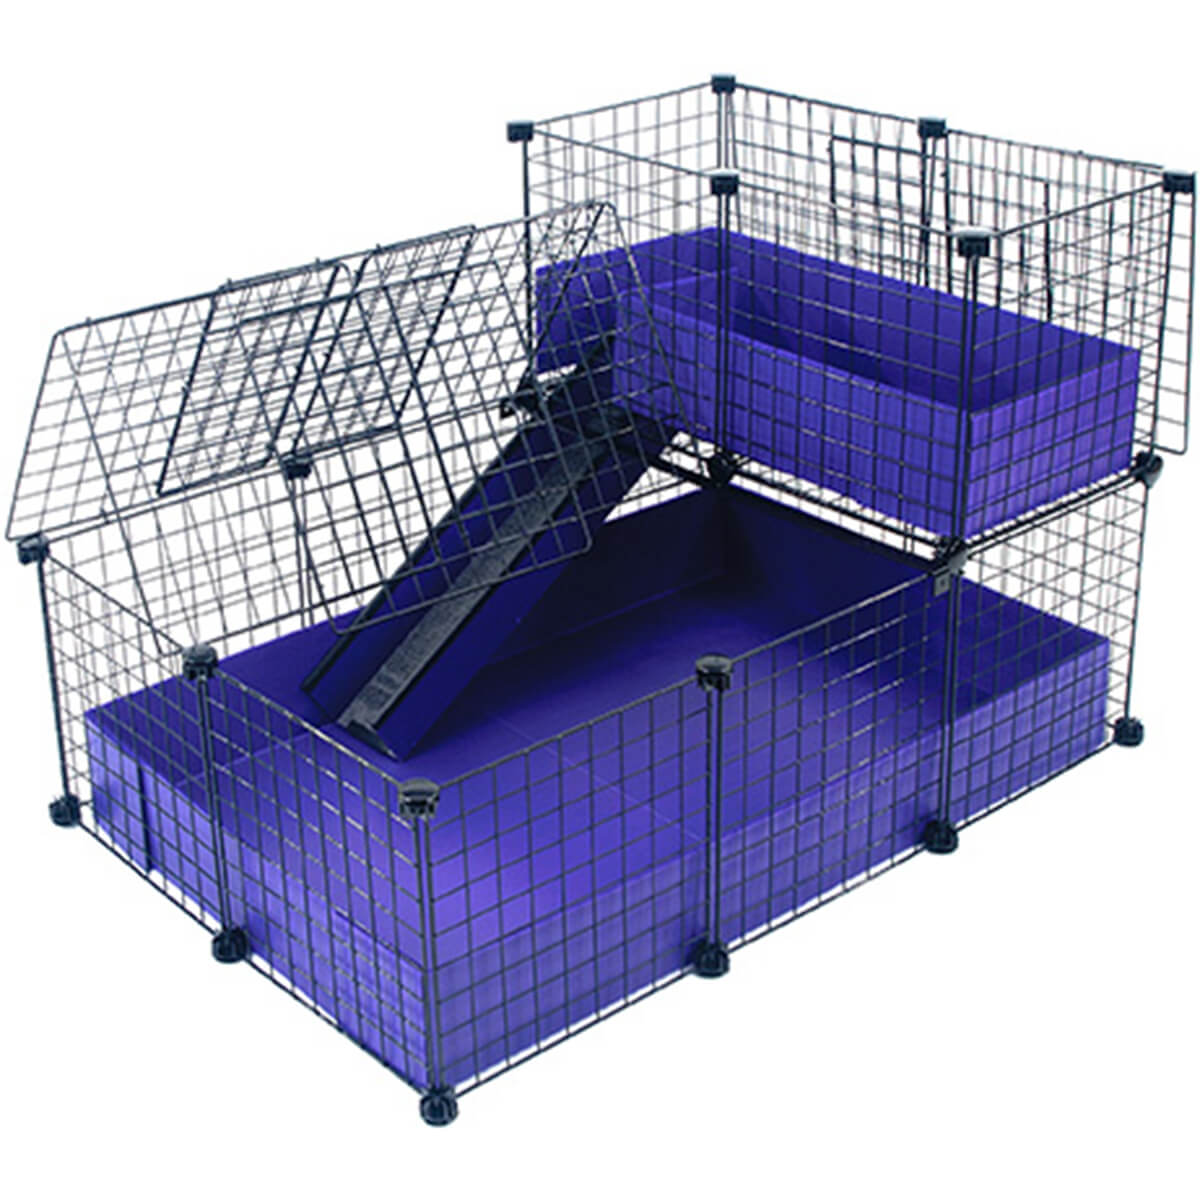 small with narrow loft covered deluxe covered cages c